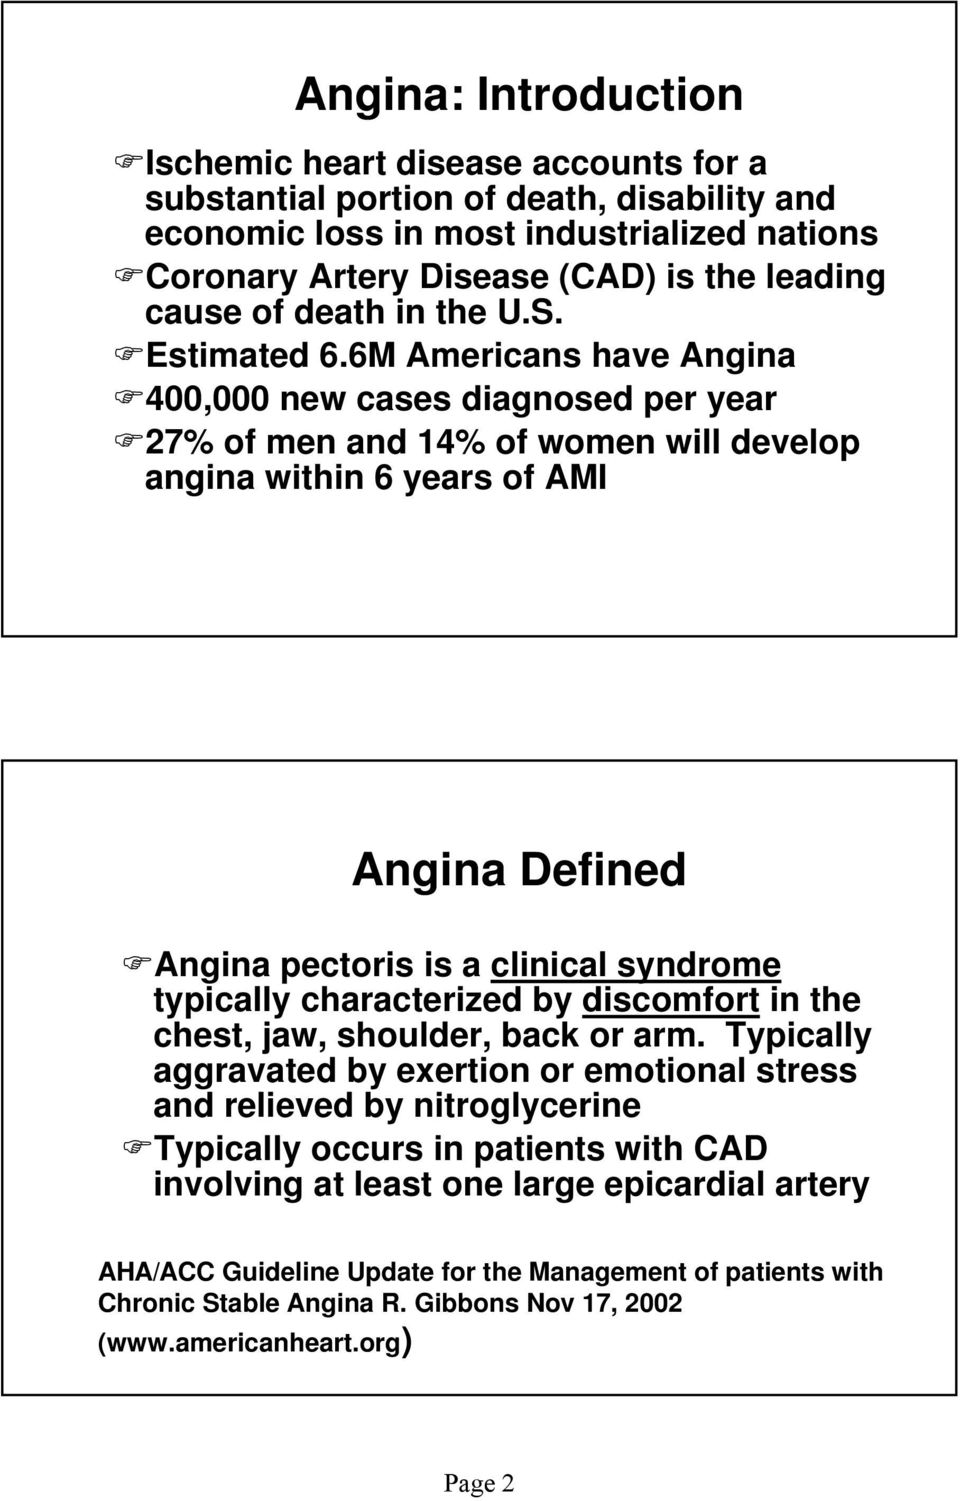 ischemic heart disease: angina pectoris - pdf